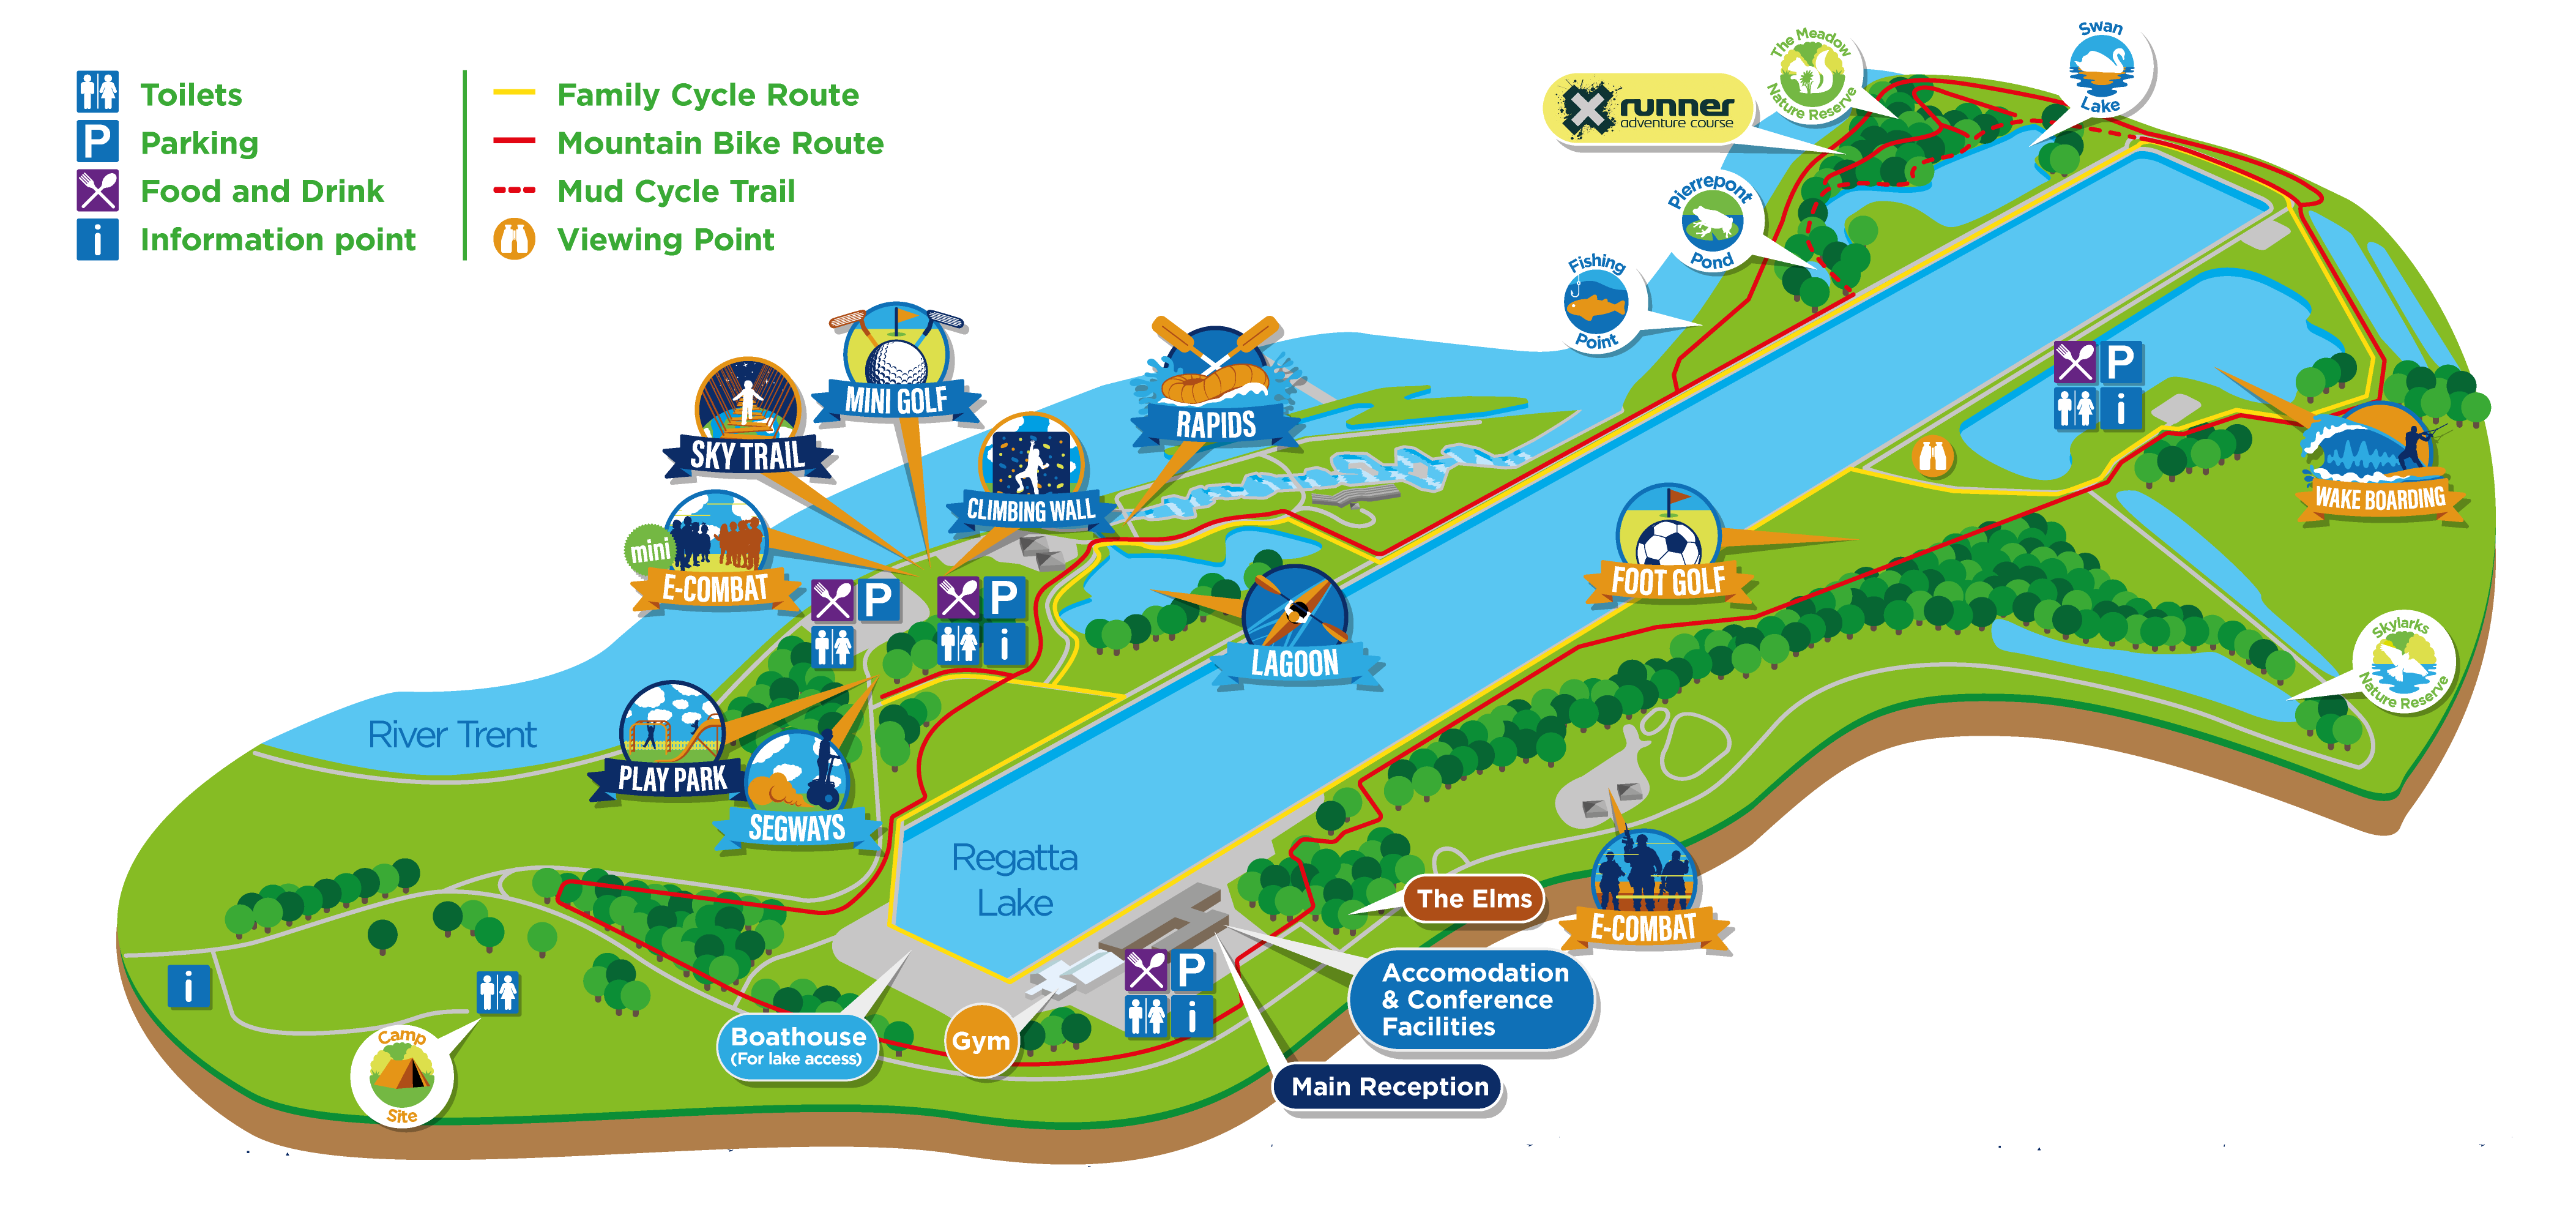 Park Map For Holme Pierrepont Country Park